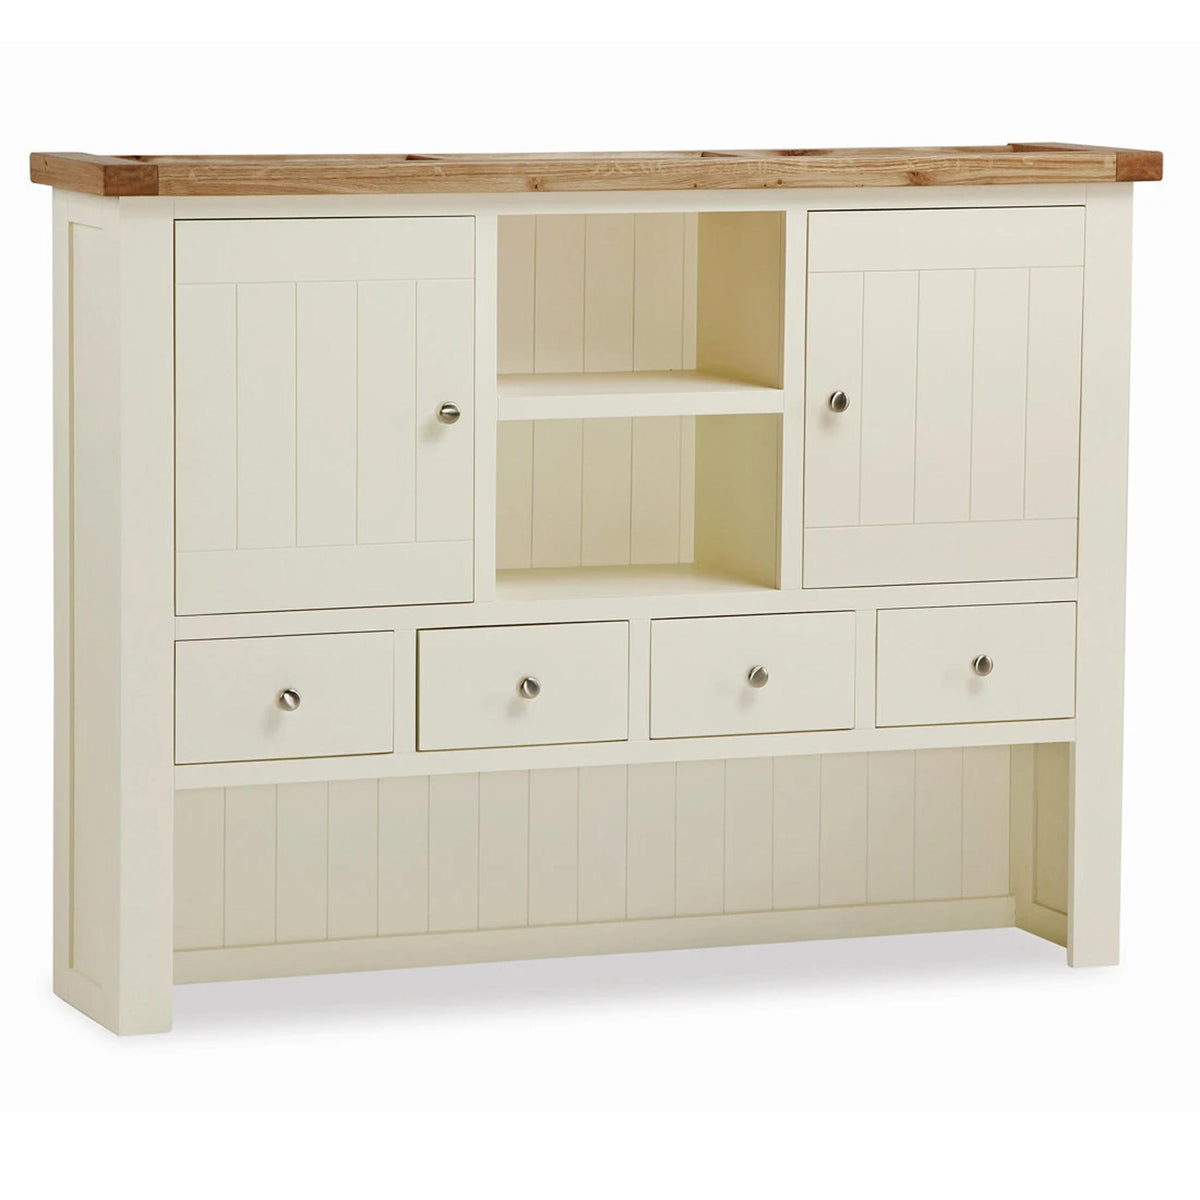 The Daymer Cream Large Wooden Kitchen Dresser Hutch from Roseland Furniture